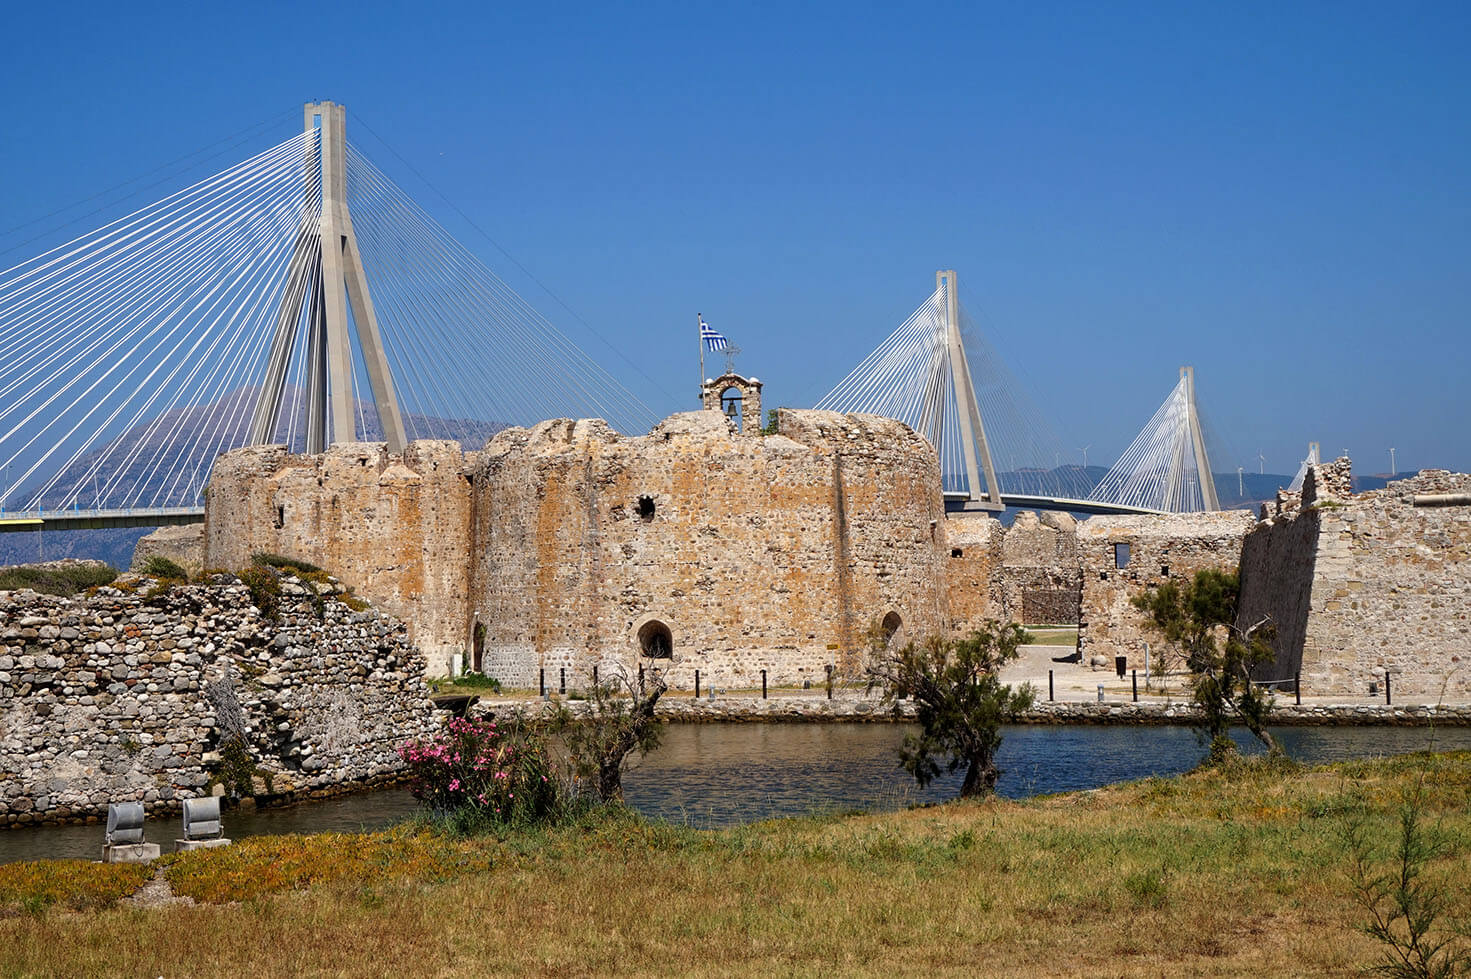 Rio Antirrio bridge and fortress